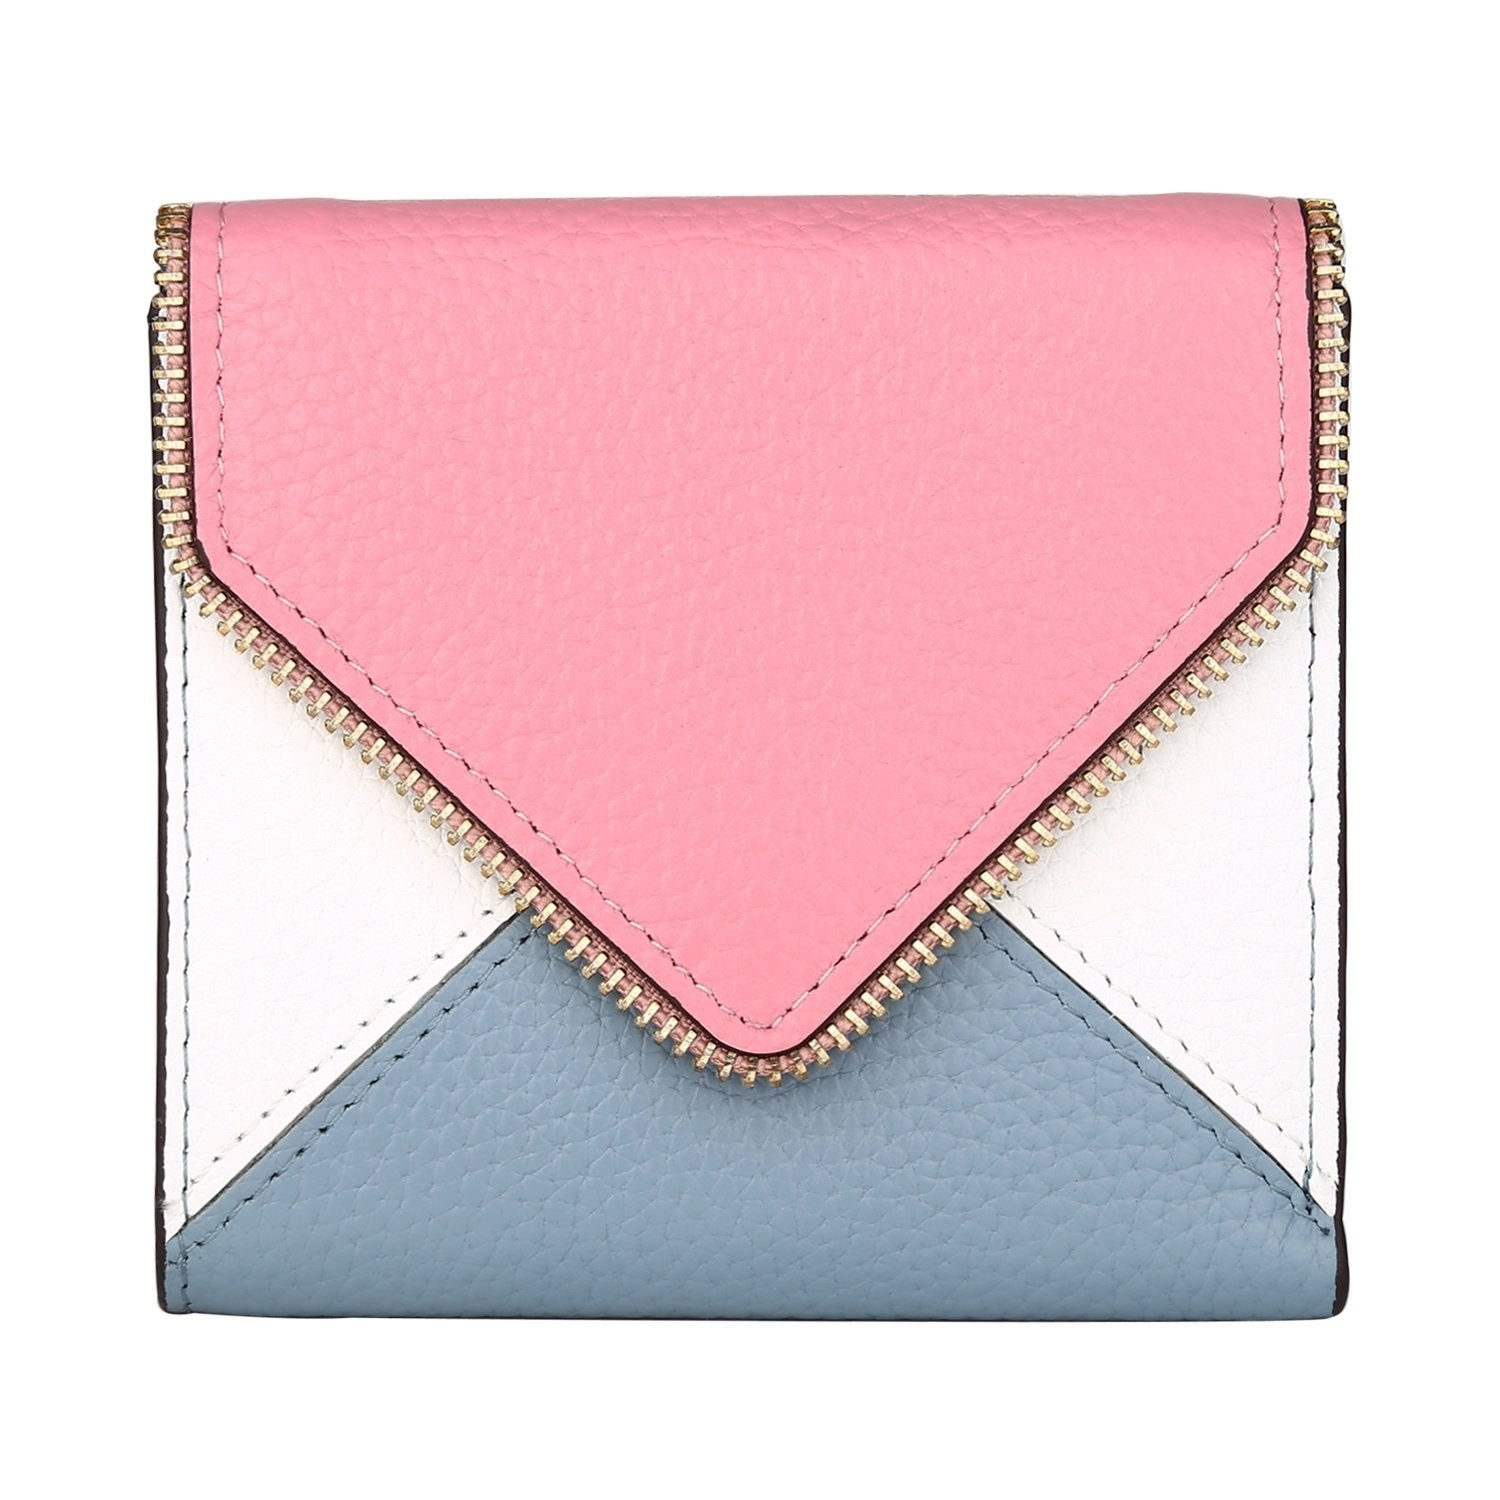 80d3c9e5487 A colorblock leather wallet so you can get a designer look (and designer  quality) without the premium price tag.